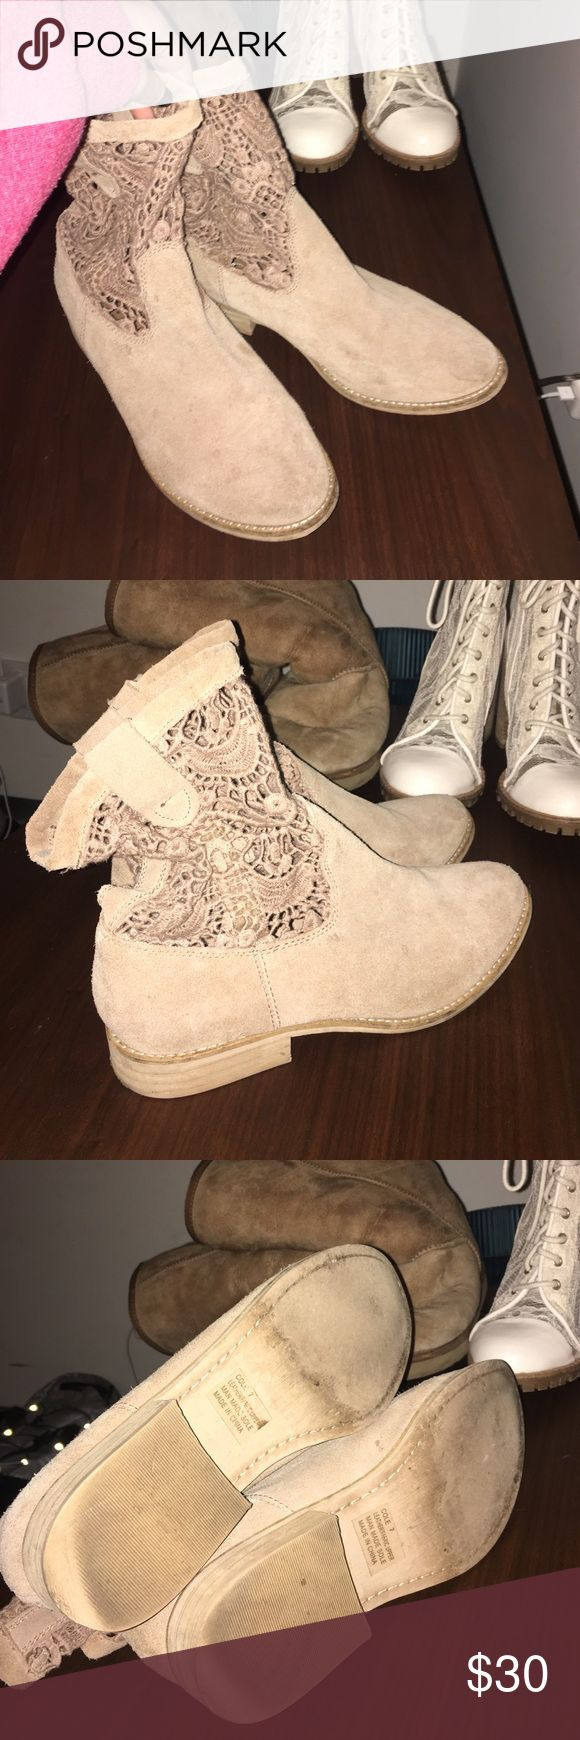 Nordstrom Boots Barely worn, maybe once. True to size and very comfy LF Shoes